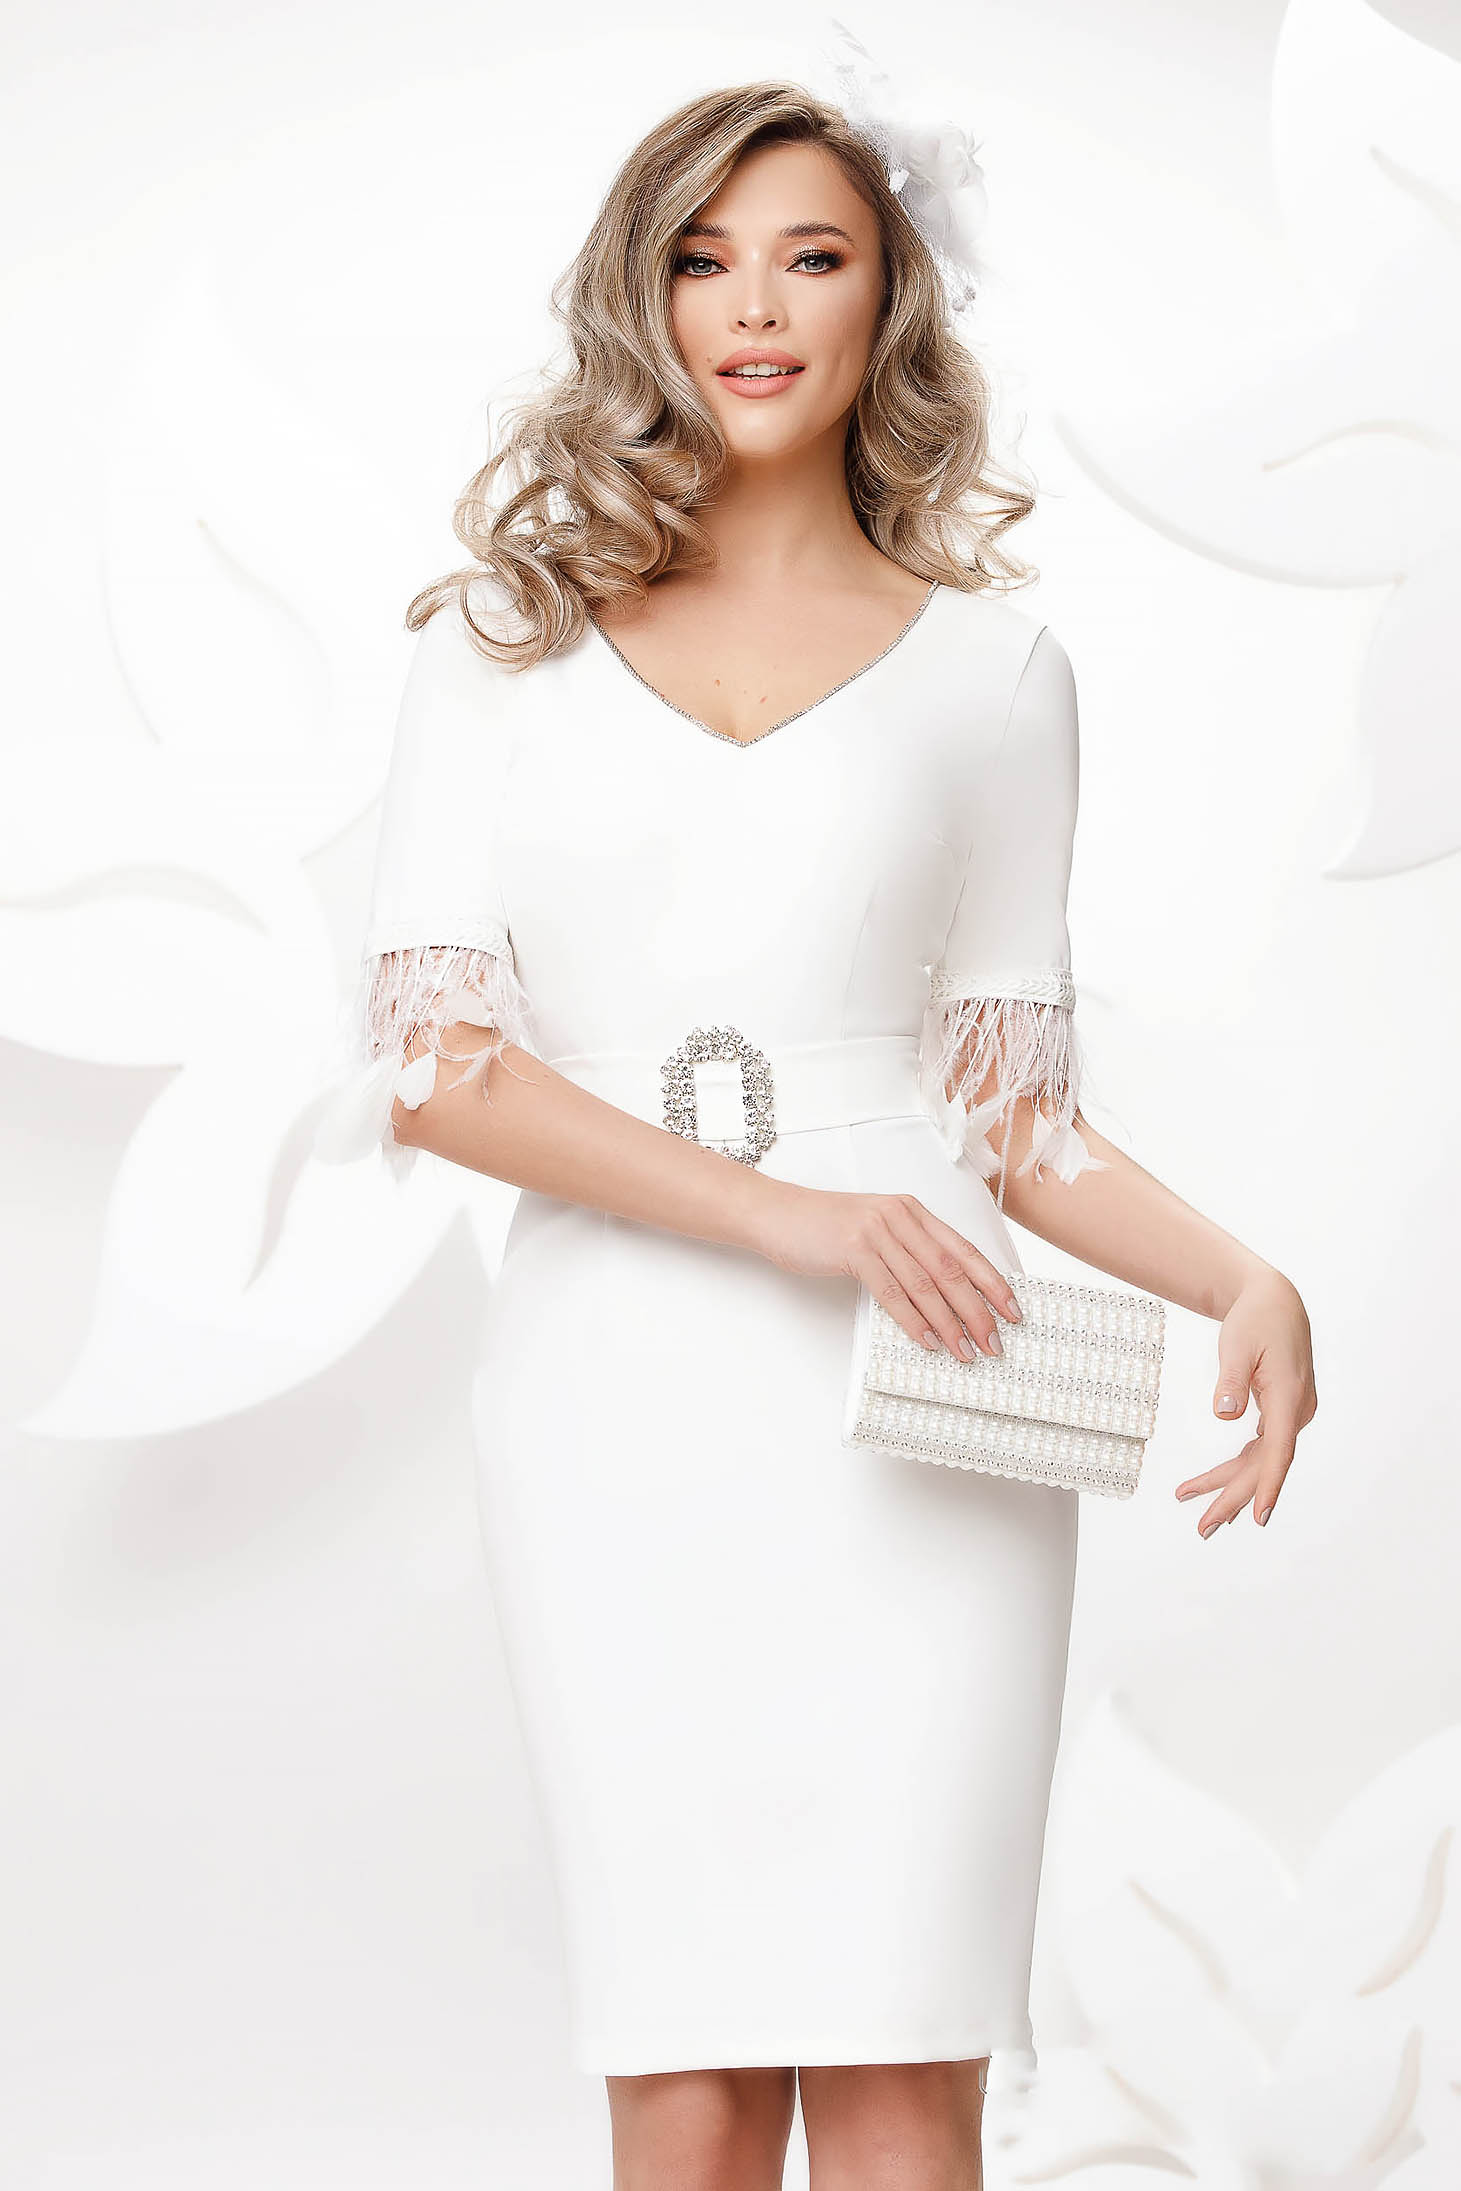 White dress midi pencil feather details with crystal embellished details cloth buckle accessory